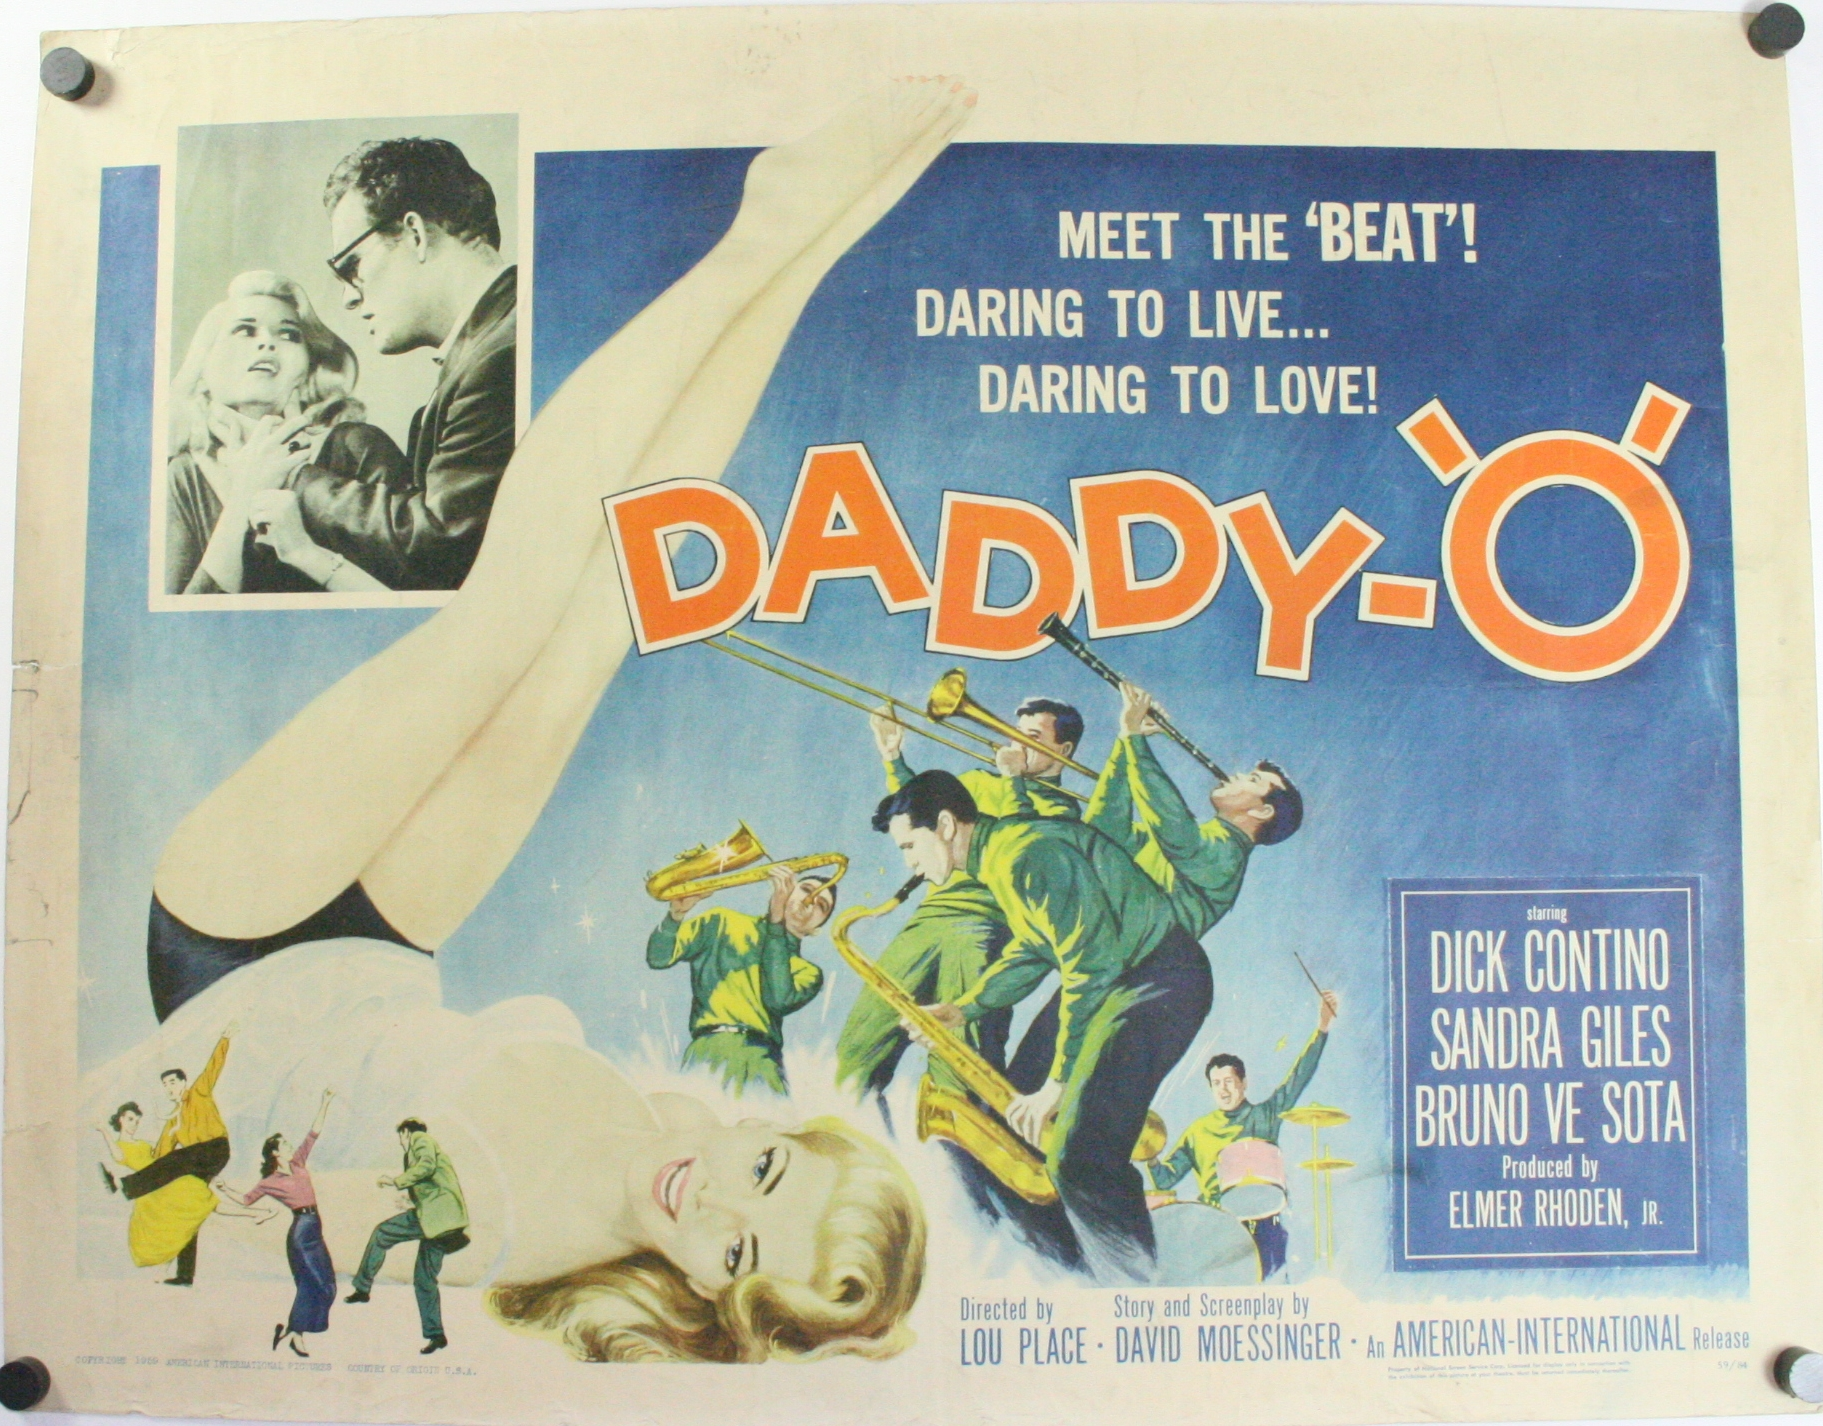 Movie poster for 'Daddy-O'. Text: Meet the 'beat'! Daring to live... Daring to love! DADDY-'O'